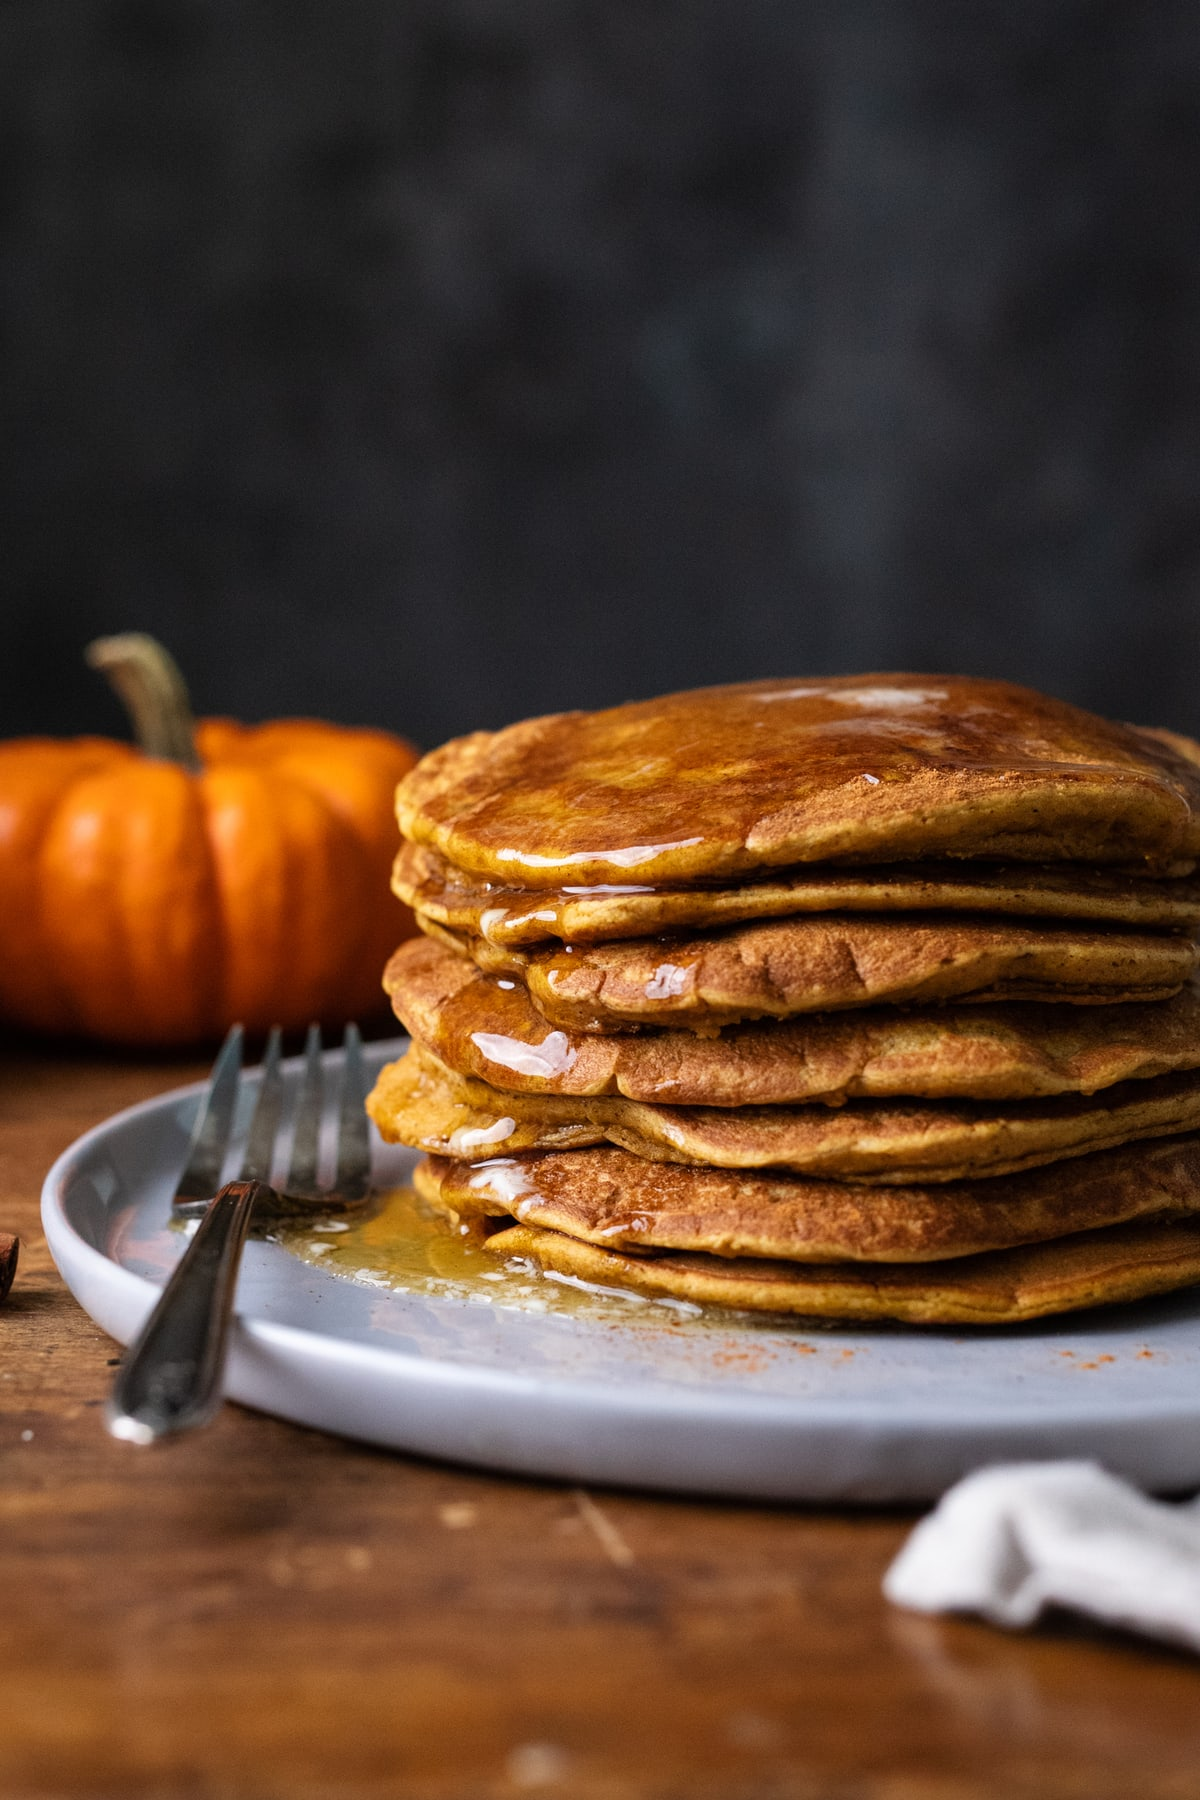 A stack of pumpkin spice pancakes on a gray plate with a fork laying next to the pancakes and an orange pumpkin in the background.